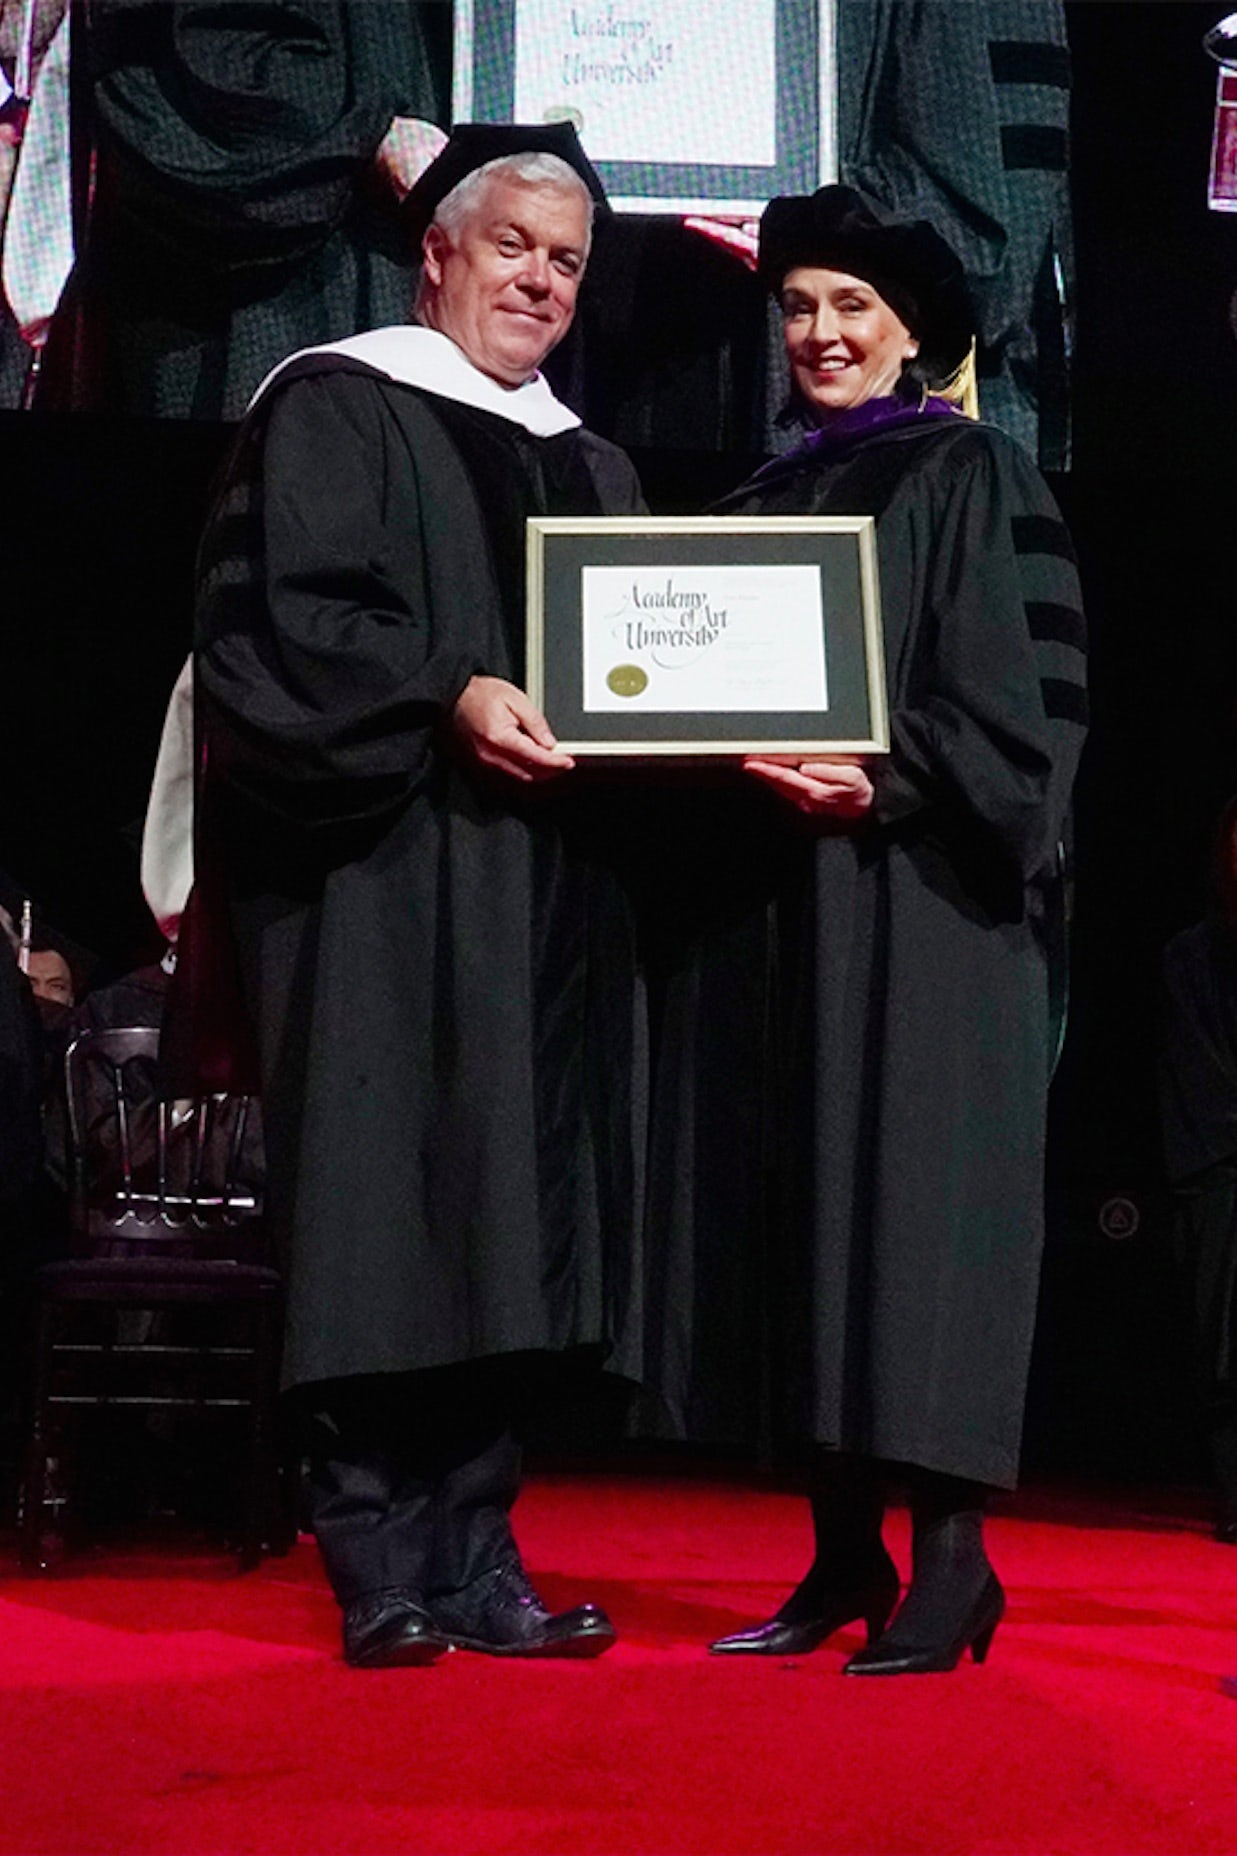 Tim Blanks receiving his honorary doctorate | Photo: Courtesy